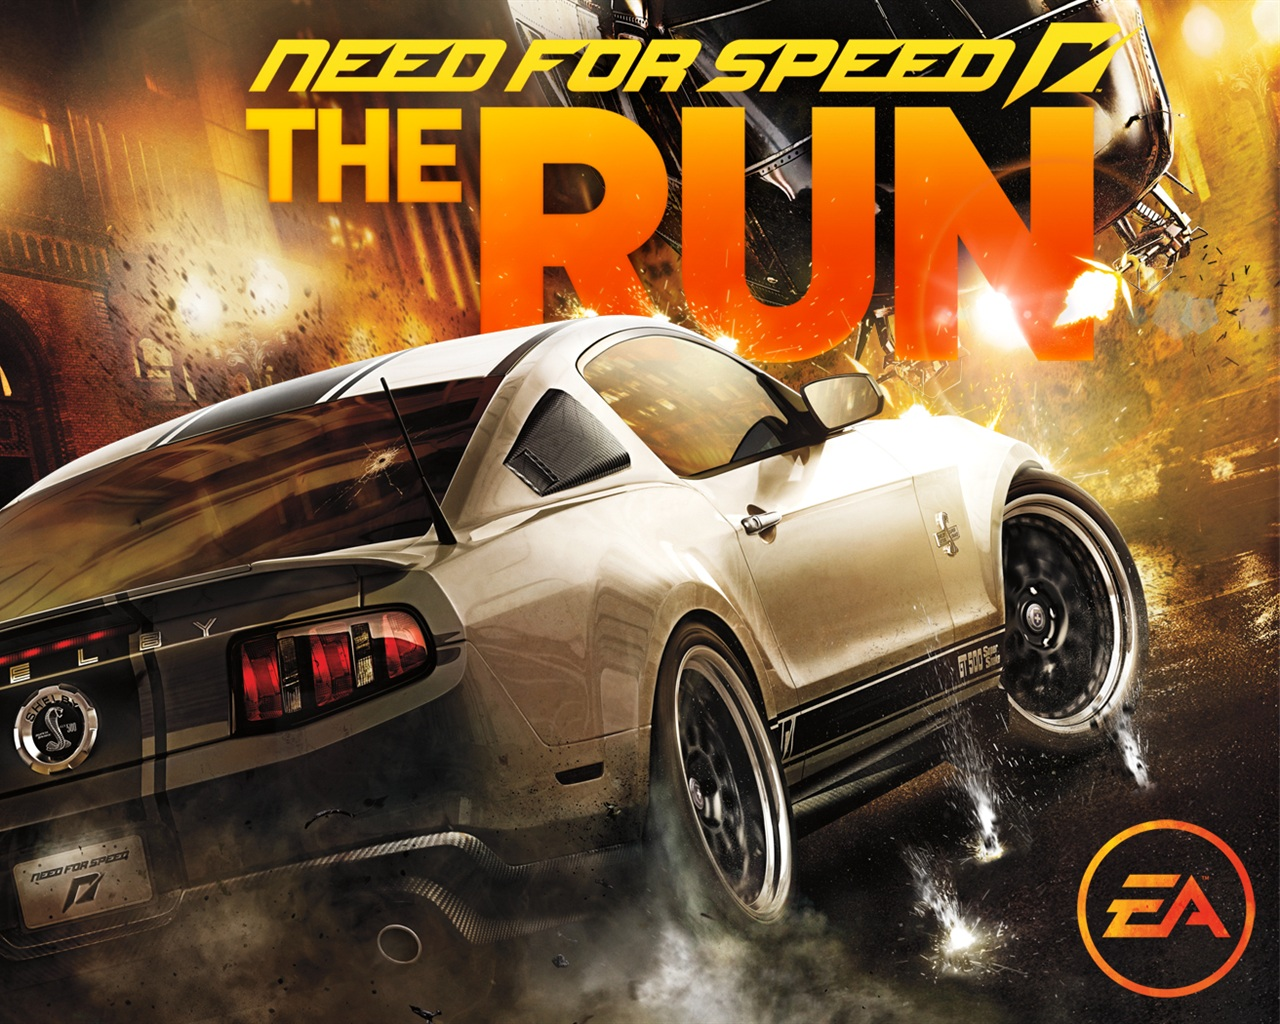 How to download need for speed payback free for pc 100% working.